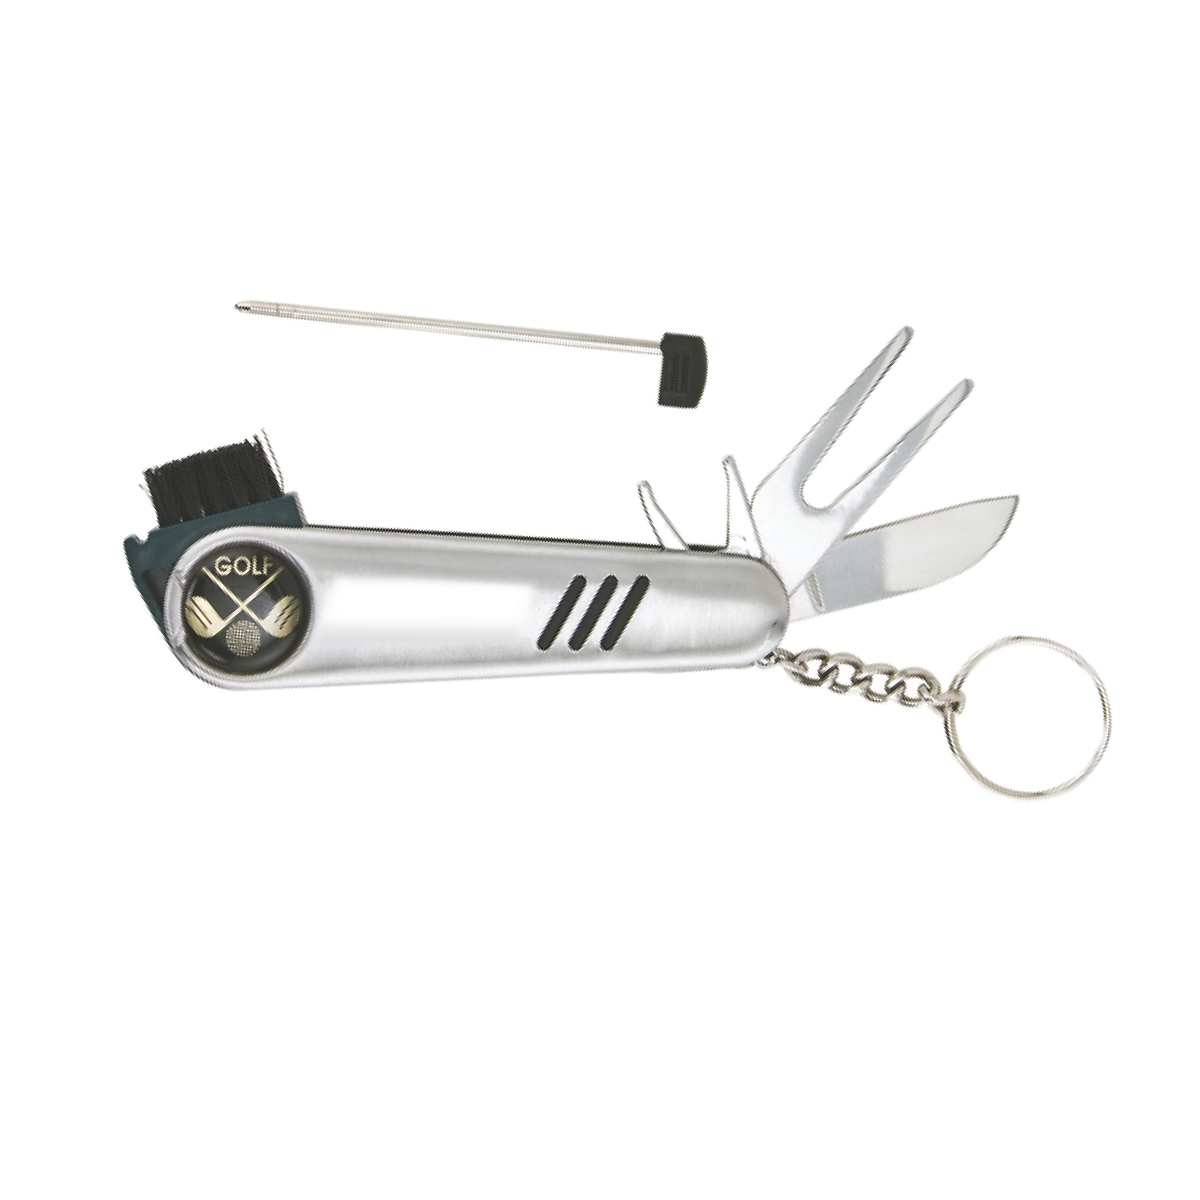 Silver 7-in-1 Golf Tool